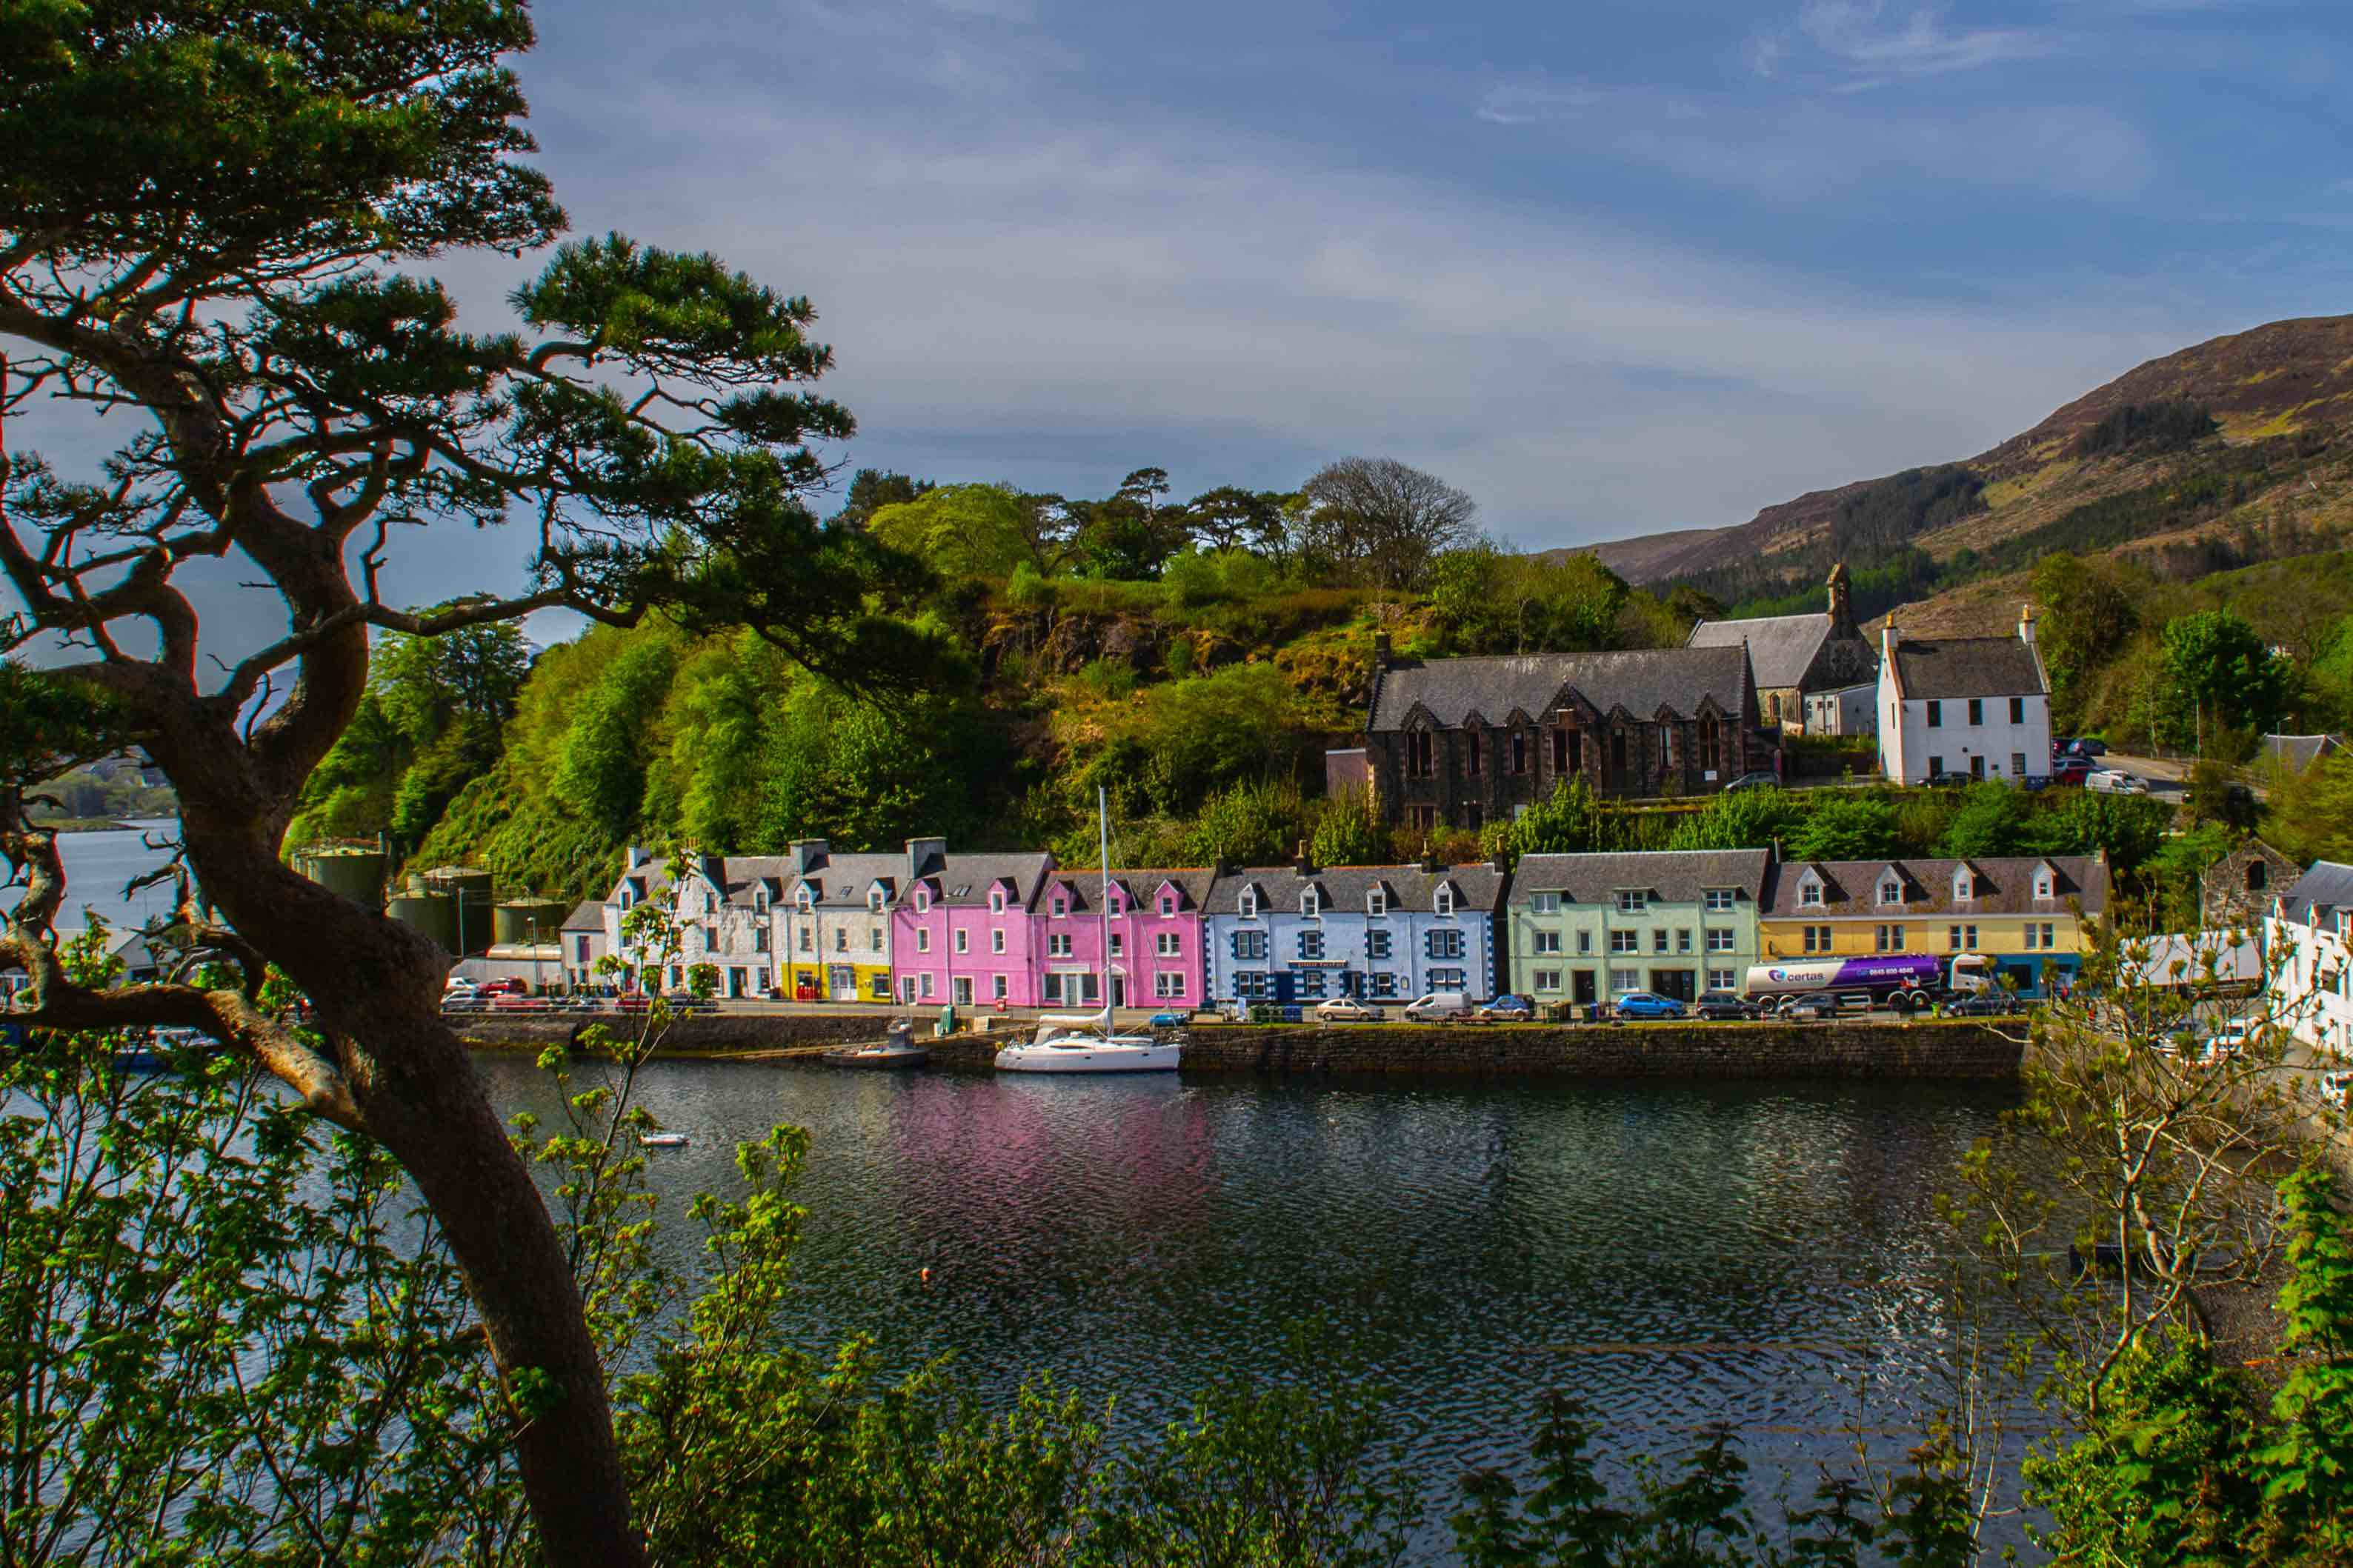 The colourful buildings in the harbour of Portree town on the Isle Of Skye.